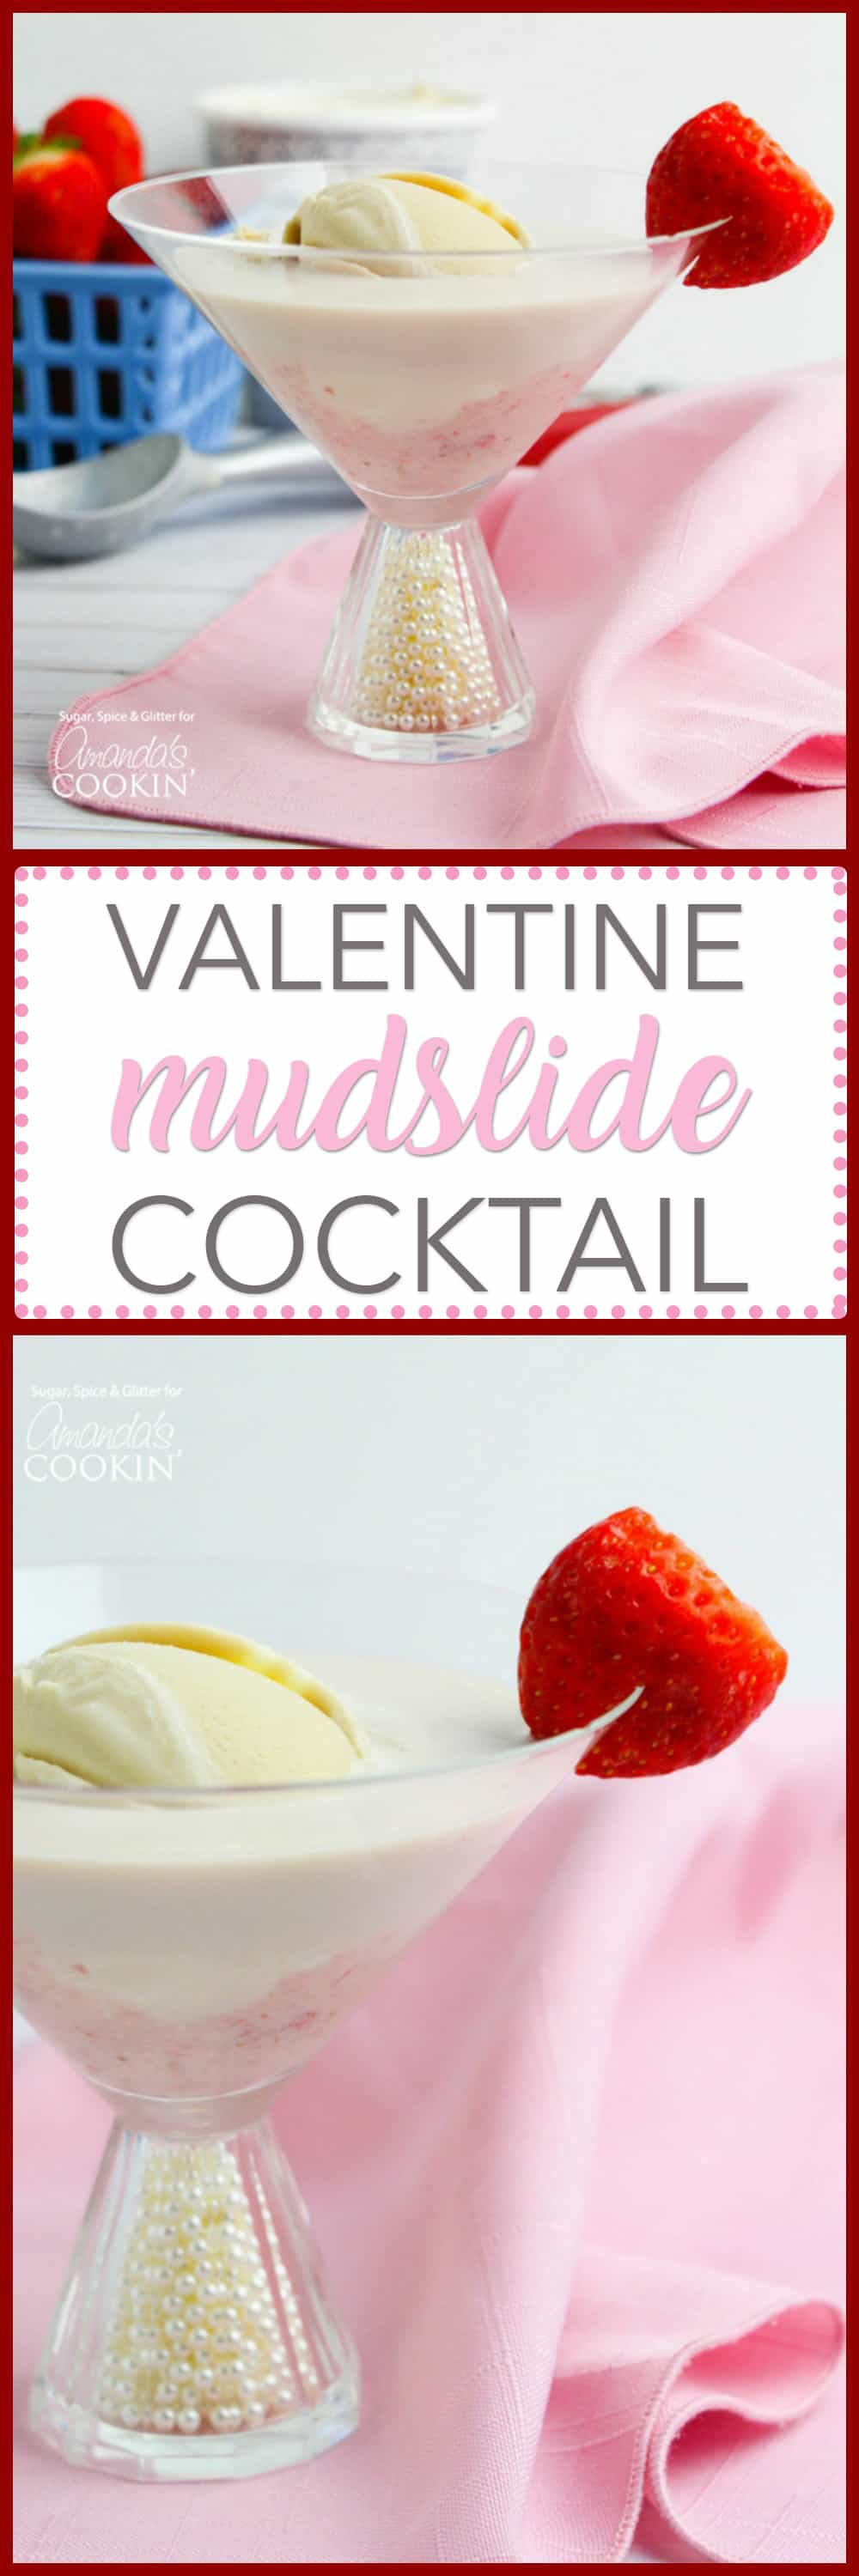 This Valentine's Mudslide adds fresh strawberries into the mix for a fresh and fruity take on a frozen cocktail classic. Make this for someone you love!